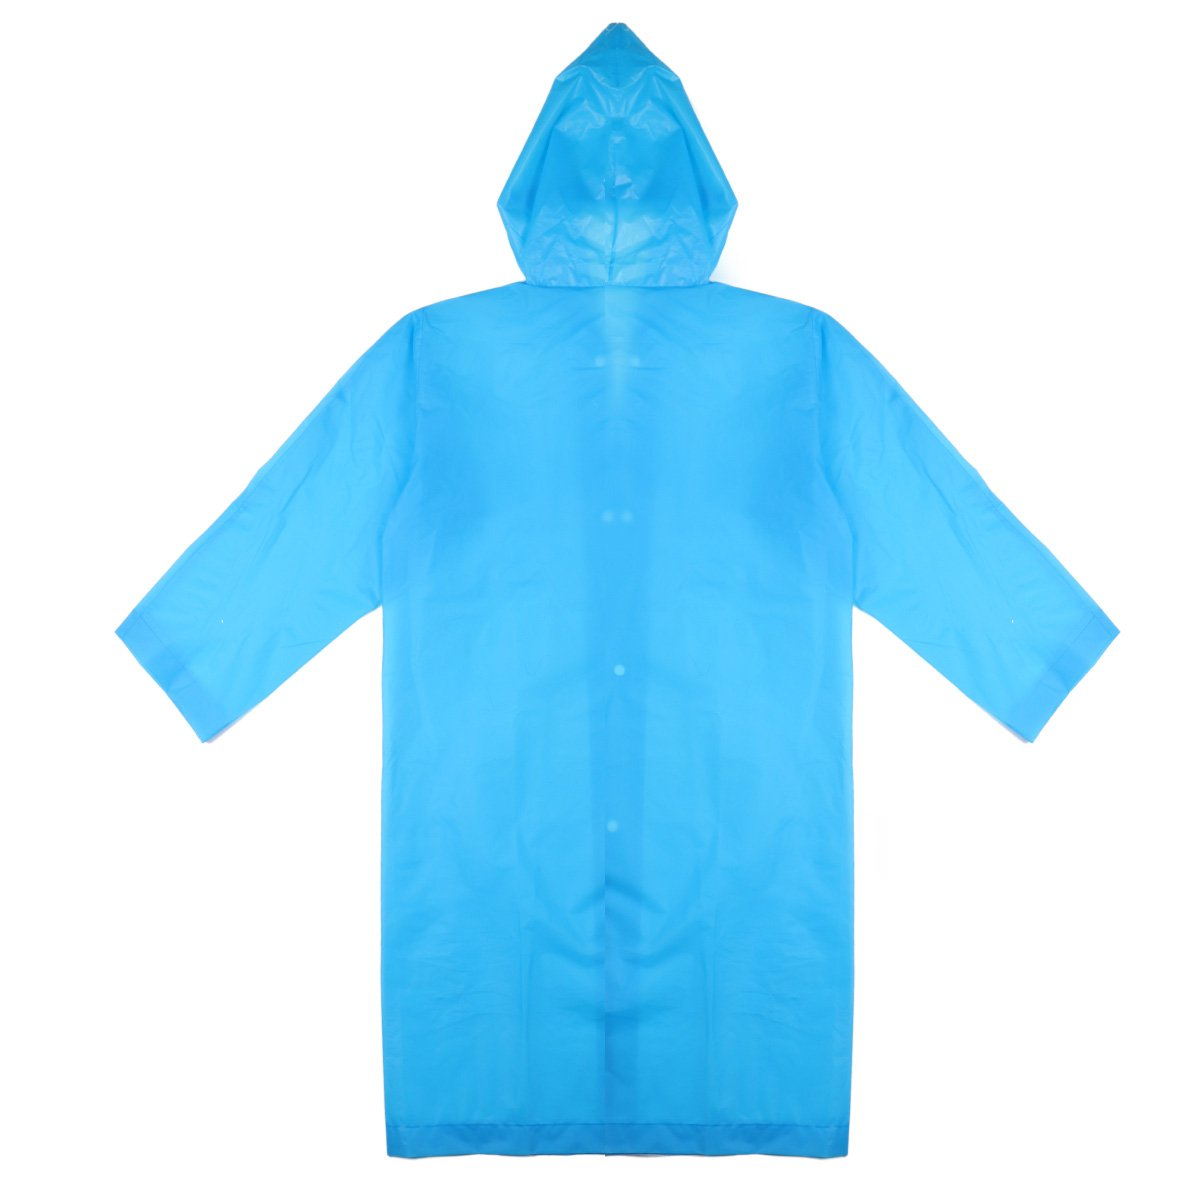 2pcs Kids Rainy Snowy Outdoor Backpack Cover Rain Ponchos Raincoat with Hood and Sleeves